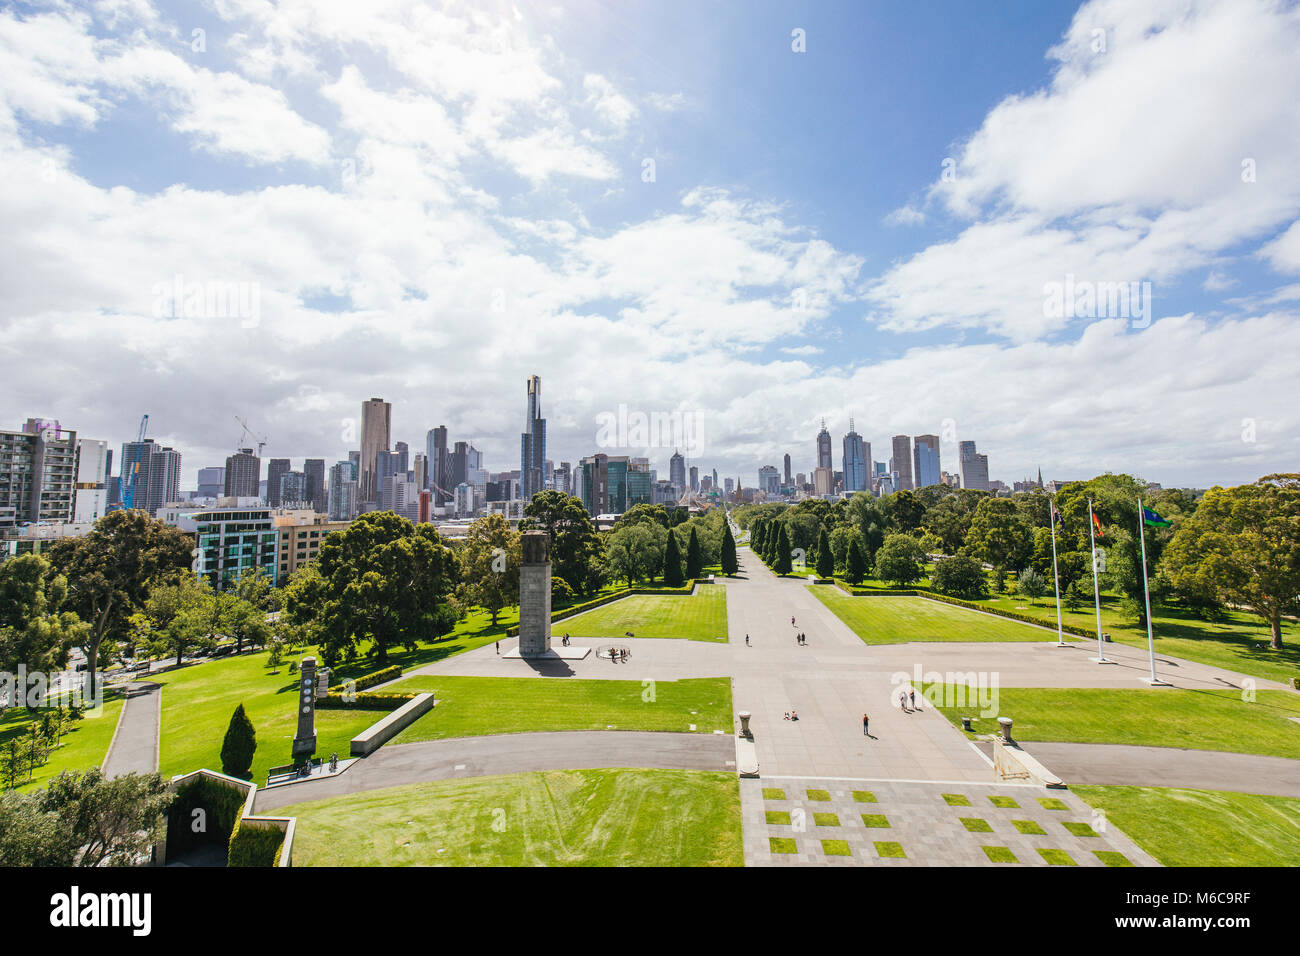 Point of View shot from the Shrine of Remembrance, Melbourne. - Stock Image